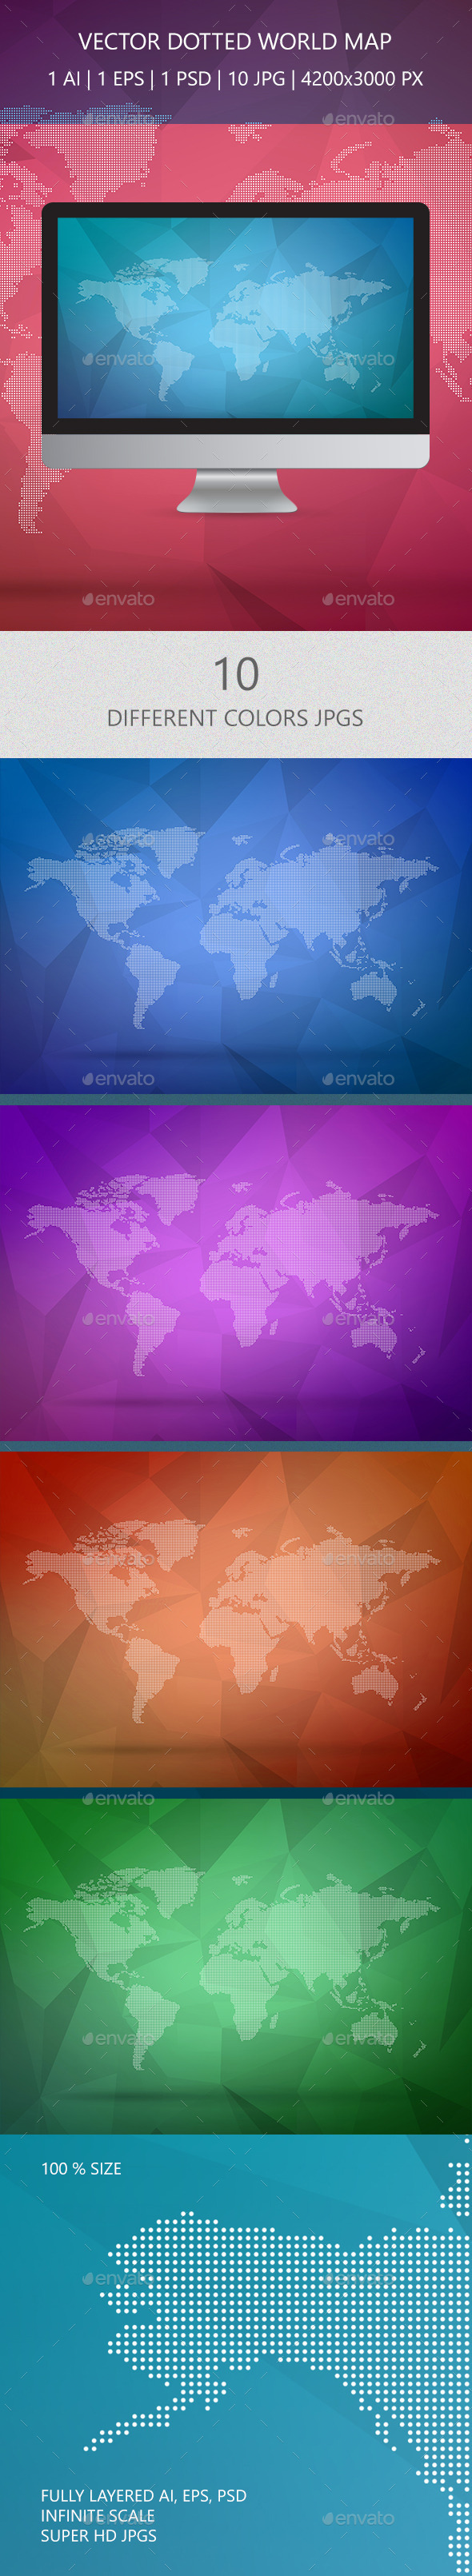 Dotted Wold Map Vector - Tech / Futuristic Backgrounds